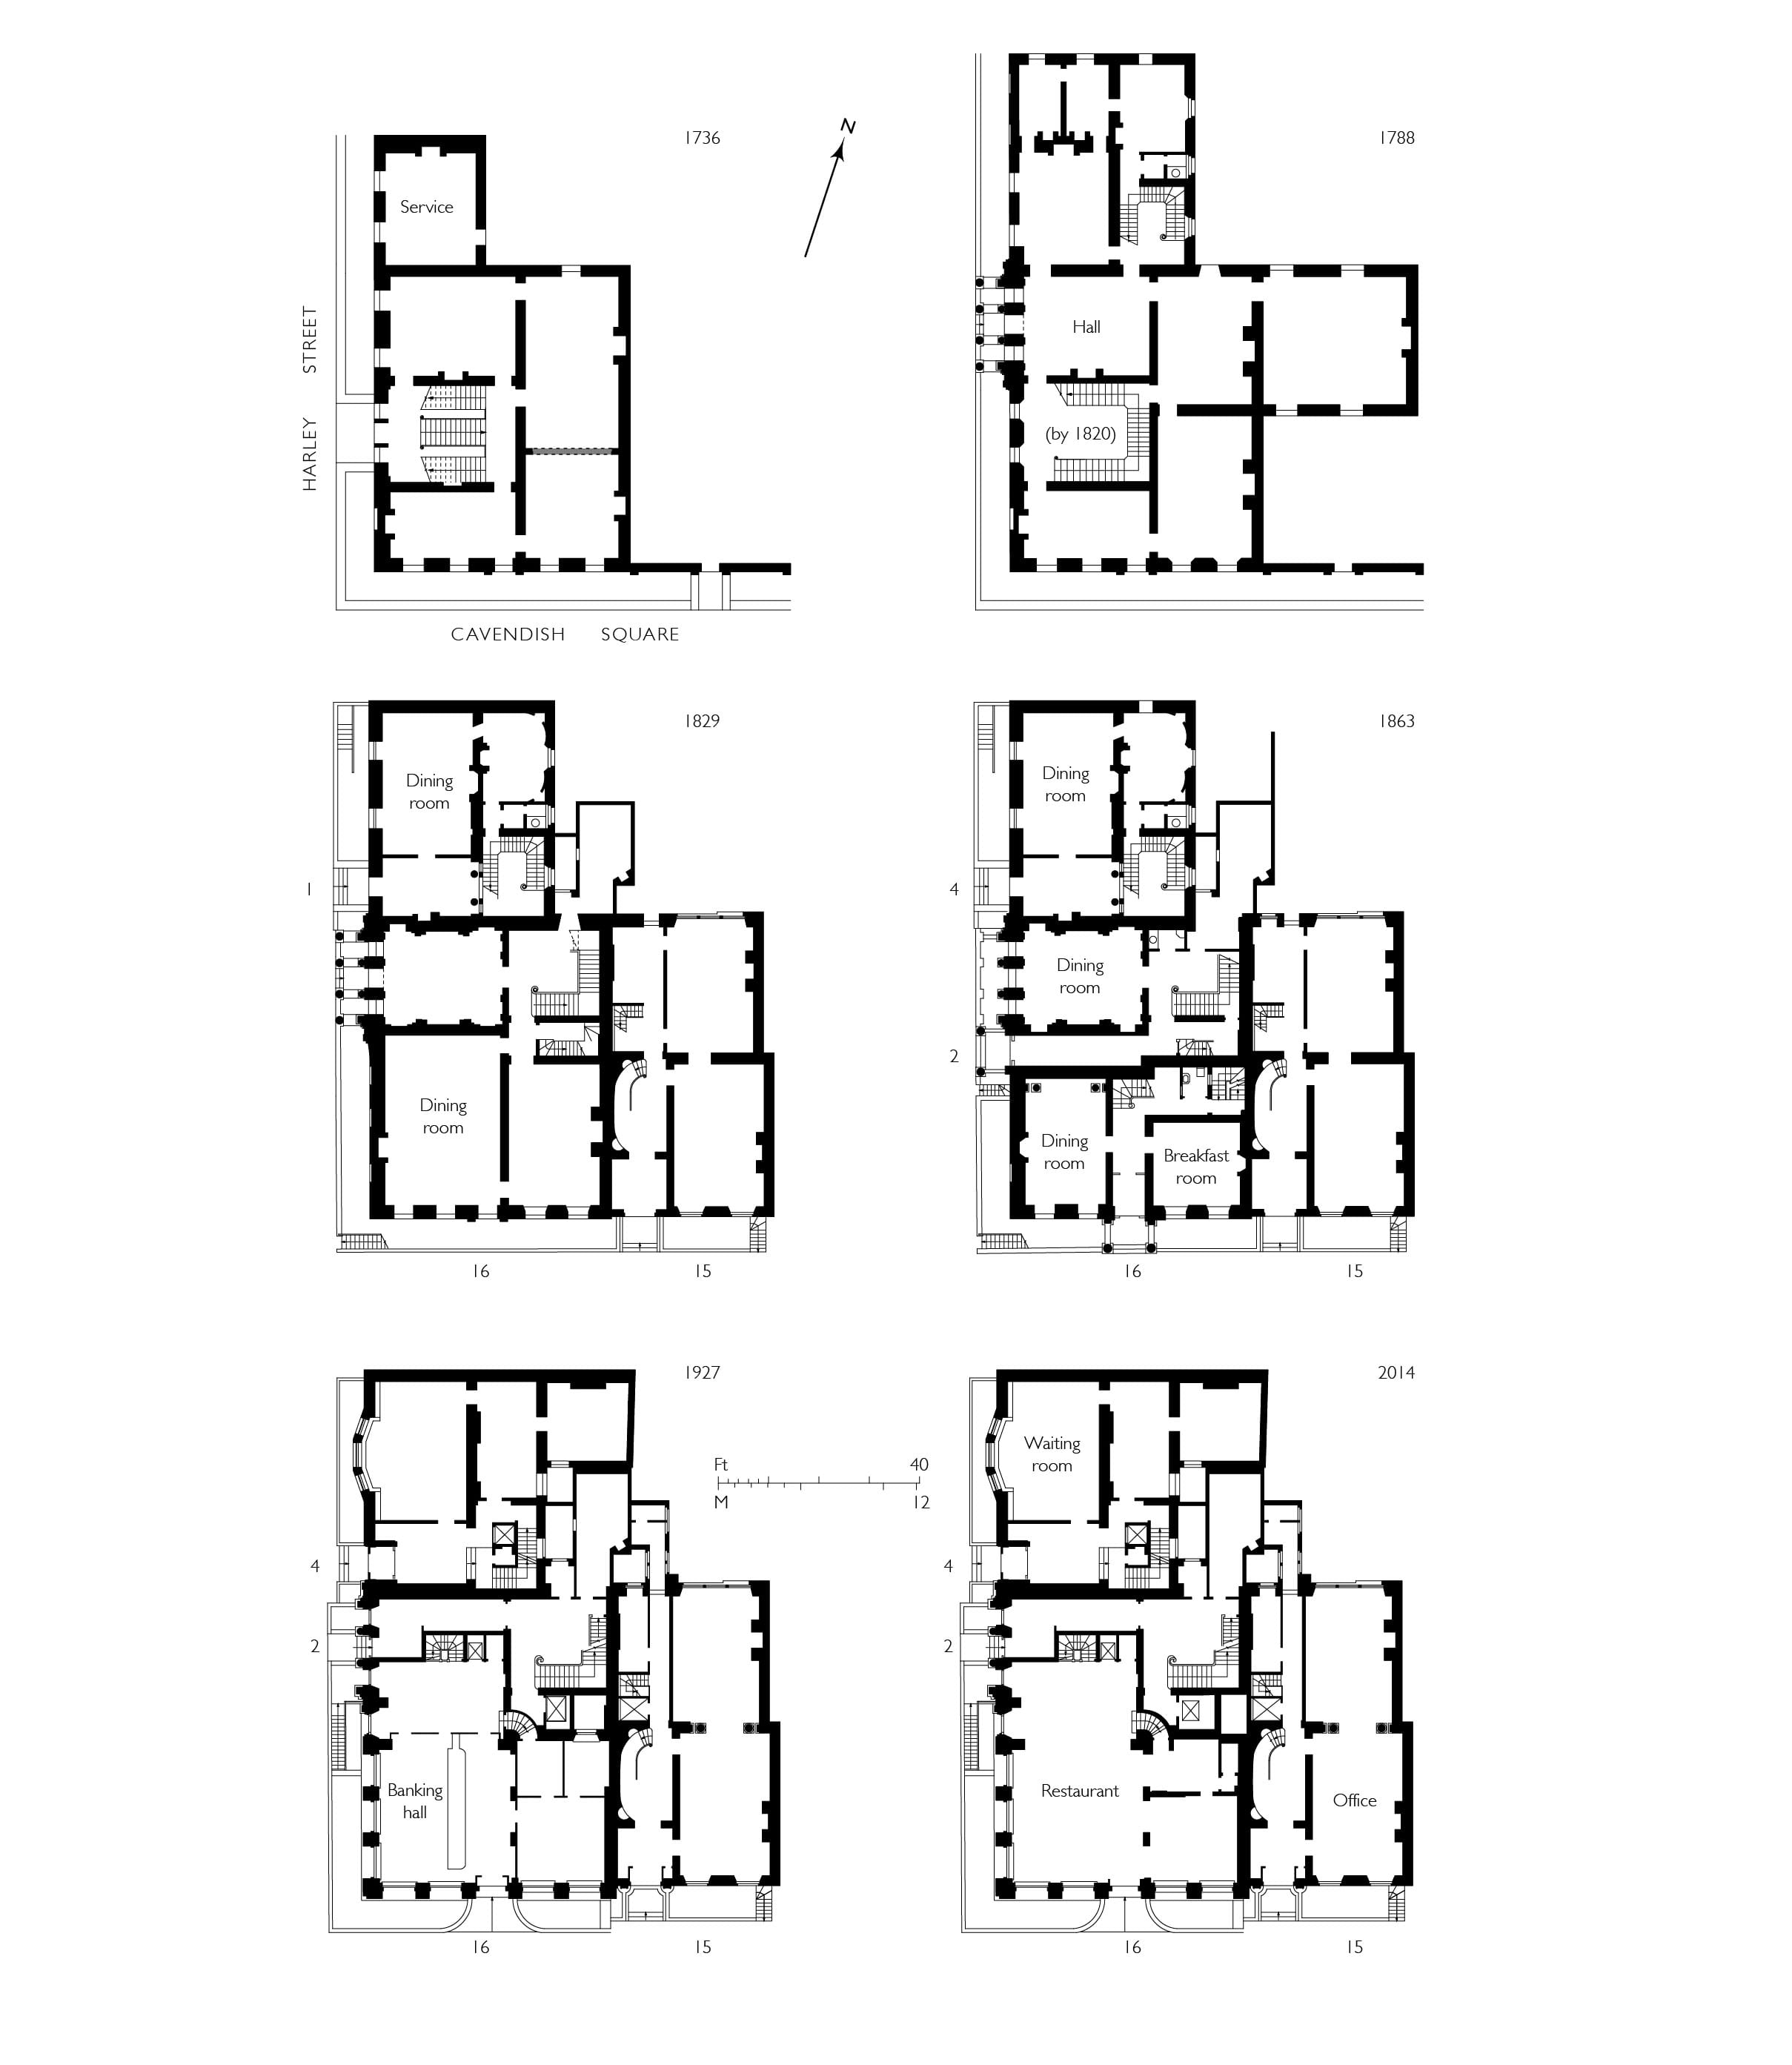 100 Number 10 Downing Street Floor Plan Downing